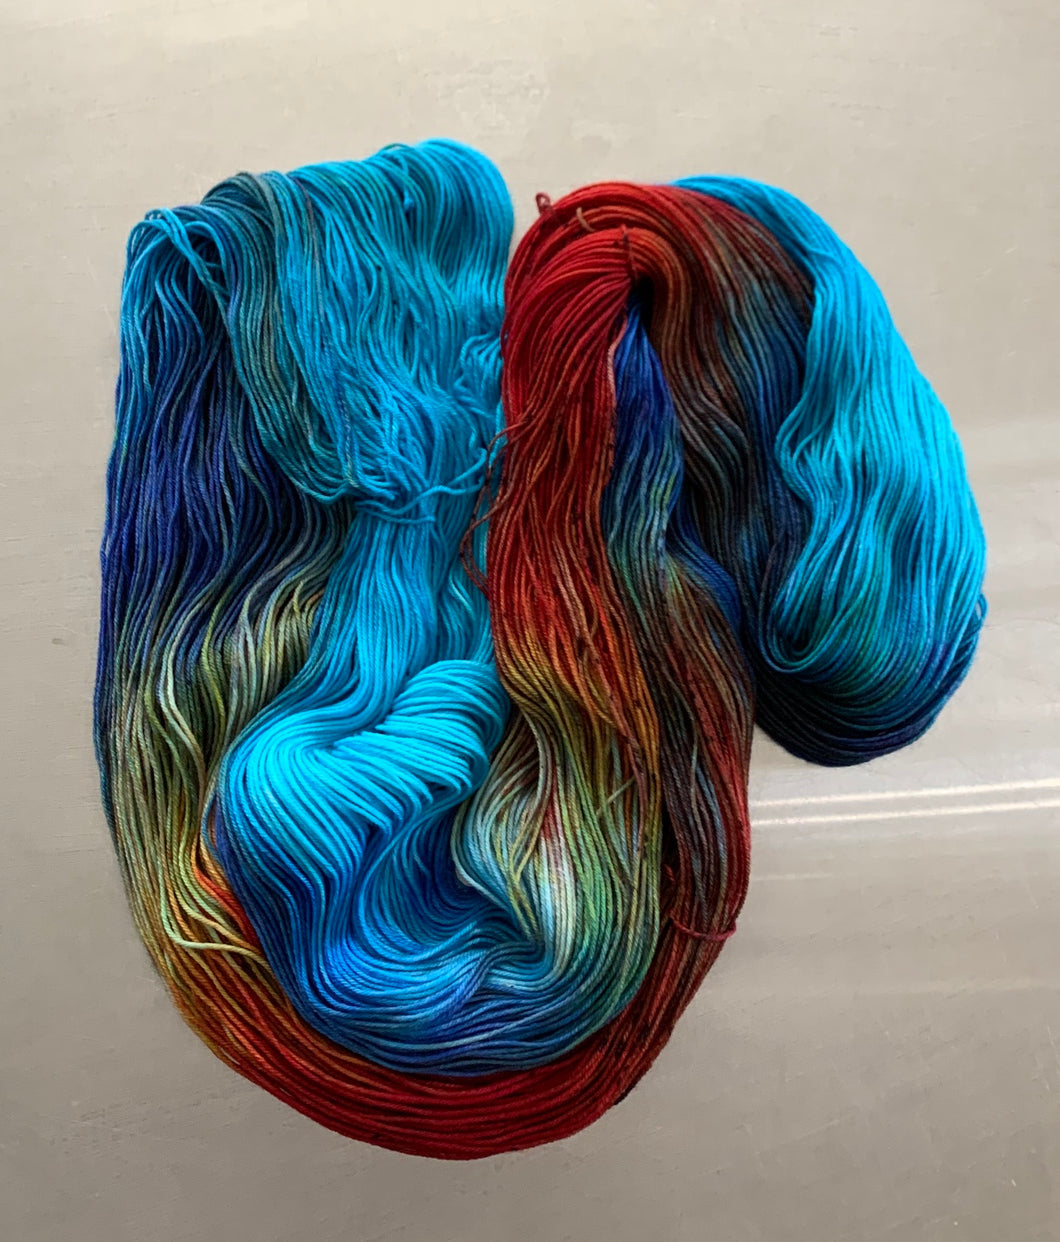 Fish Bowl- Nomad Sock Yarn